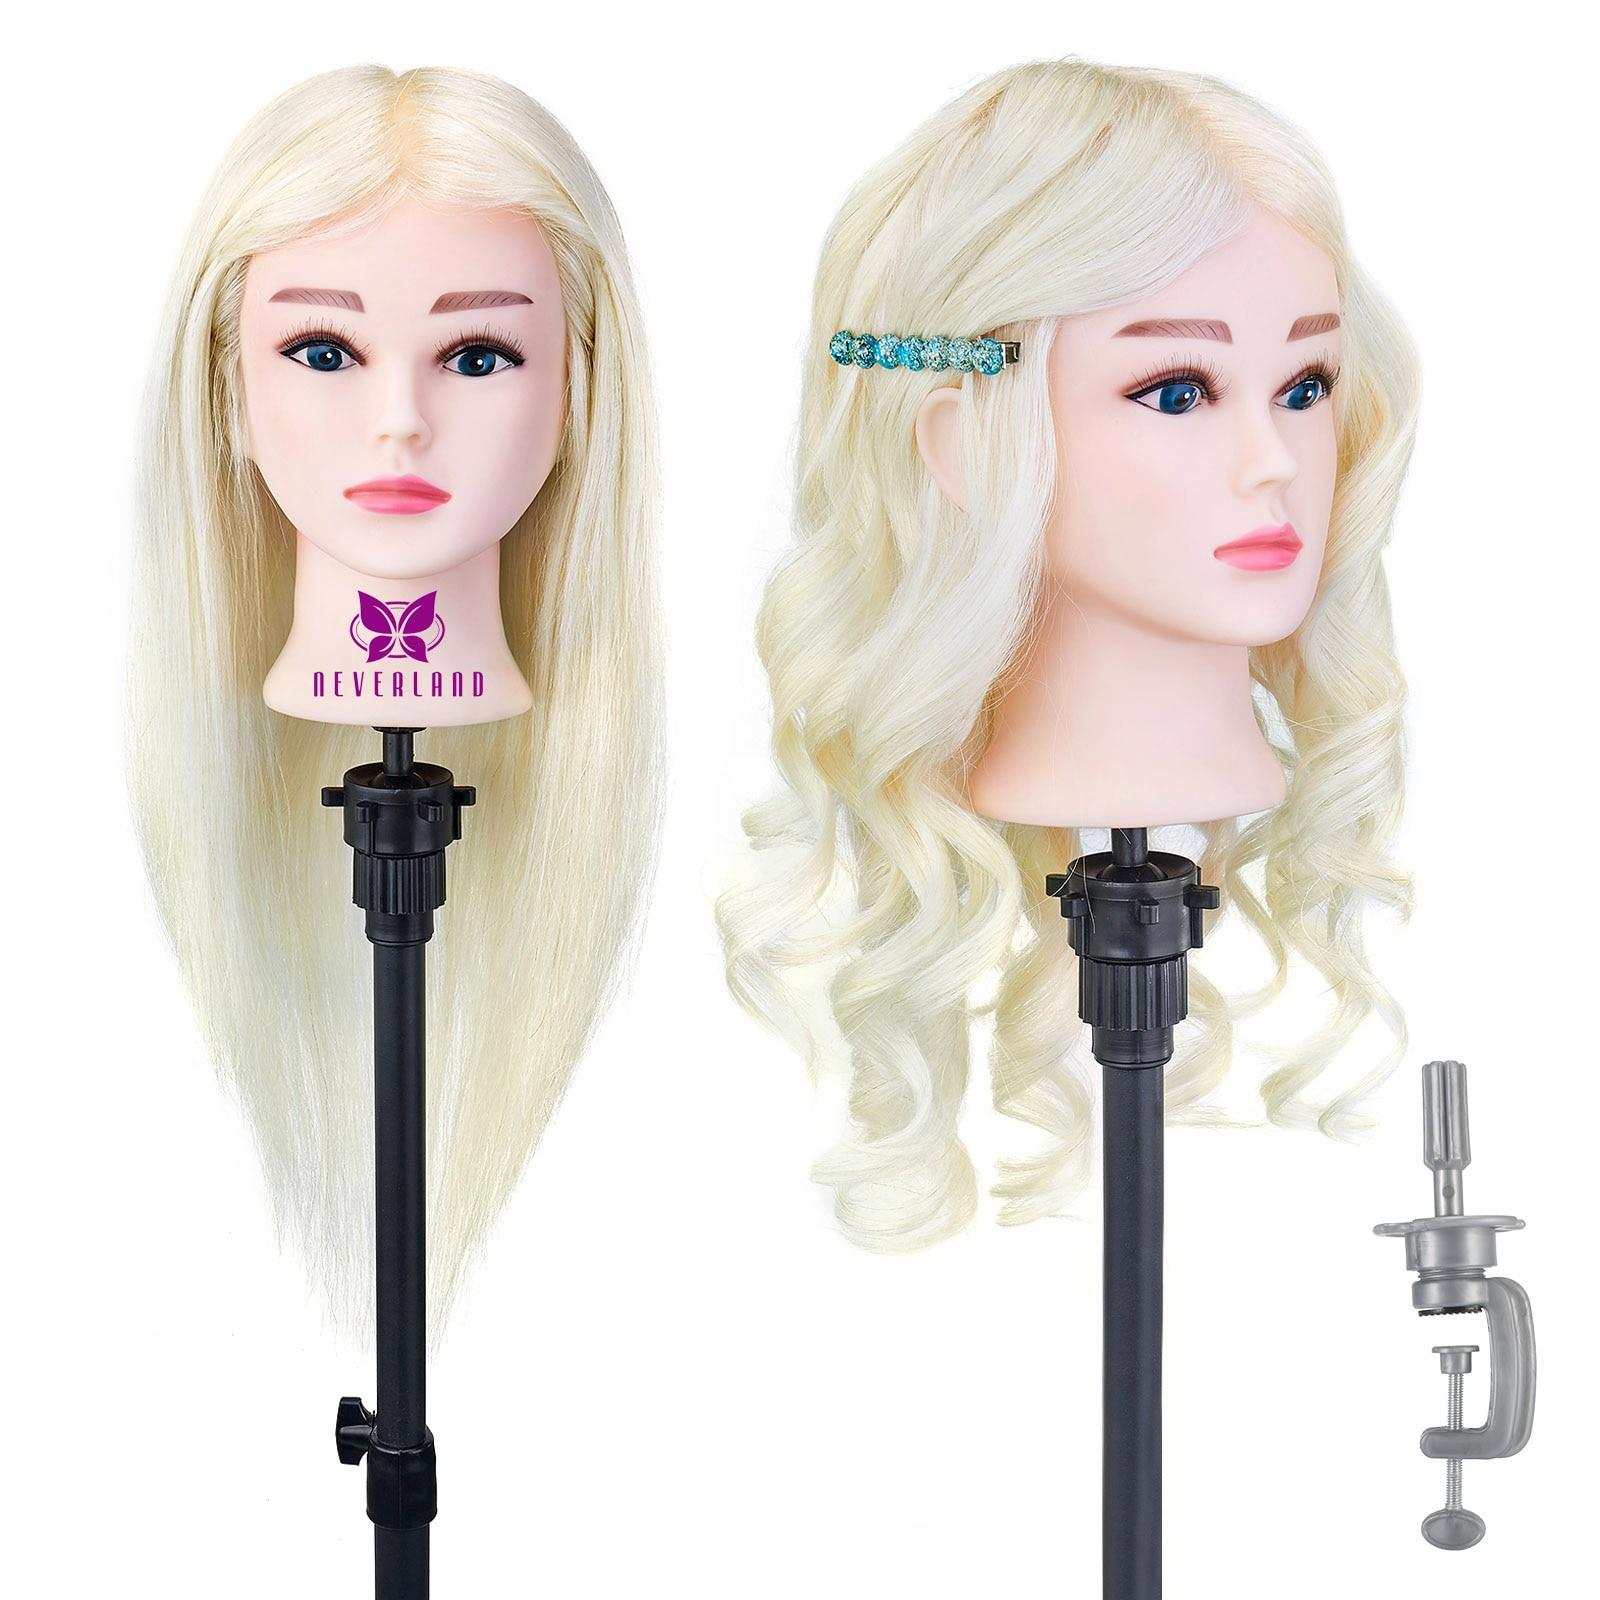 100% Real Human Hair for Hairstyles Hairdressing Mannequin Head Hairdressers Curling Dyeing Practice Training Head with Stand